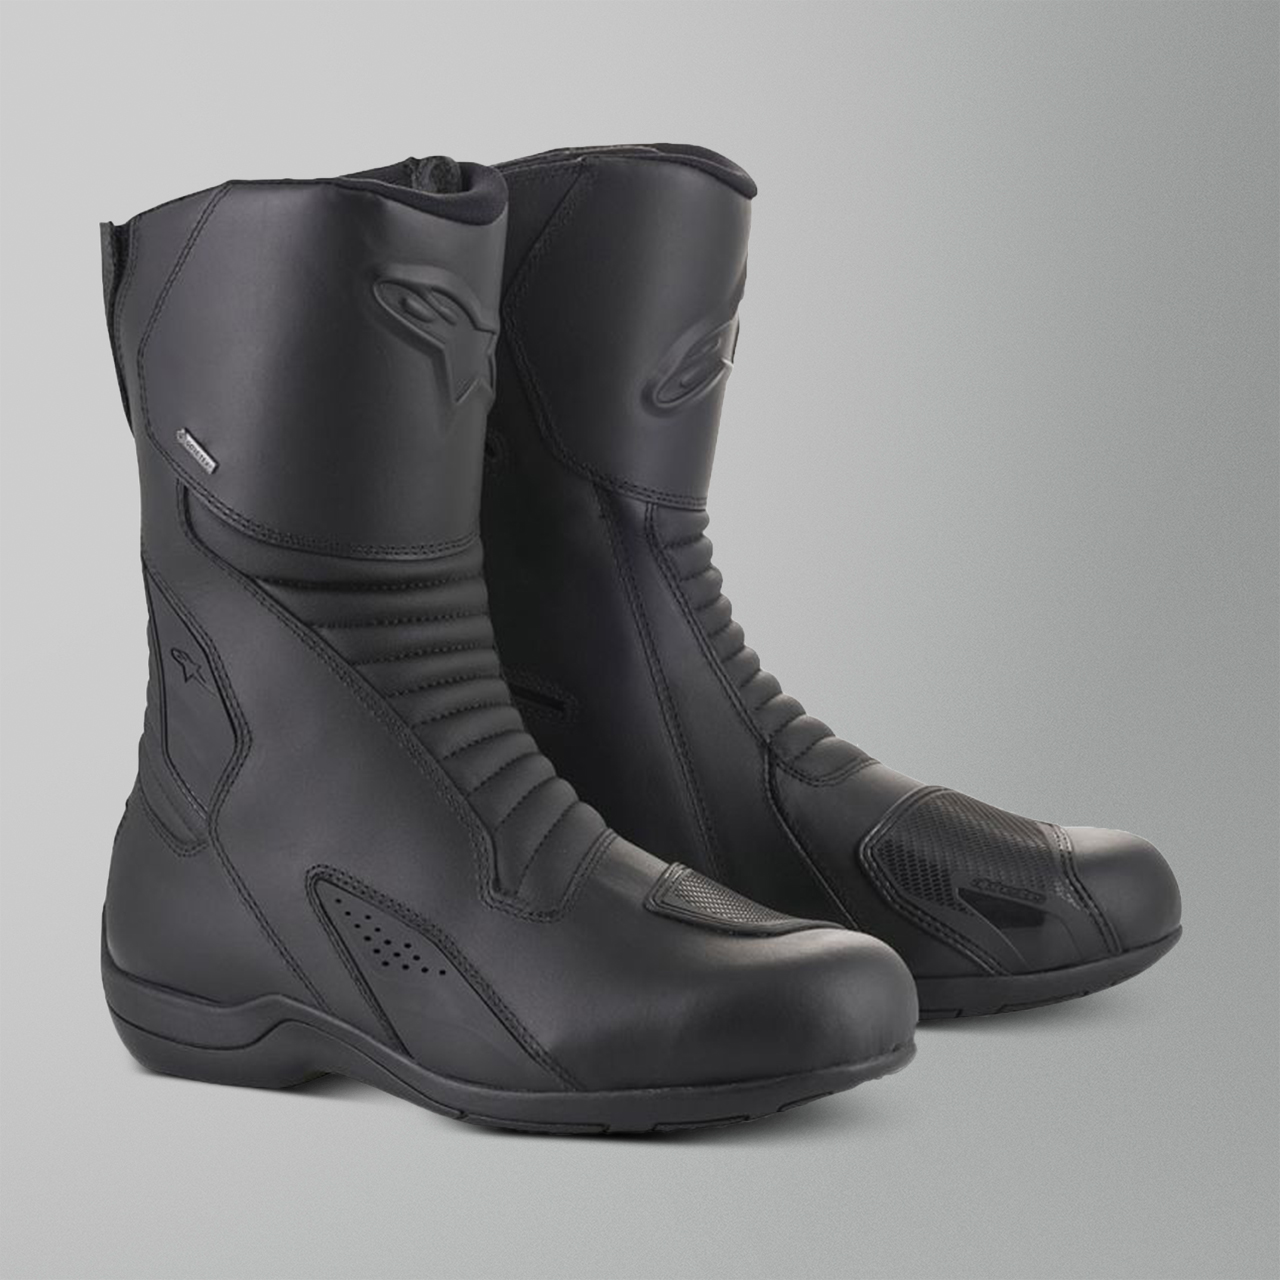 MC Skor Alpinestars Caracal Gore Tex Svart